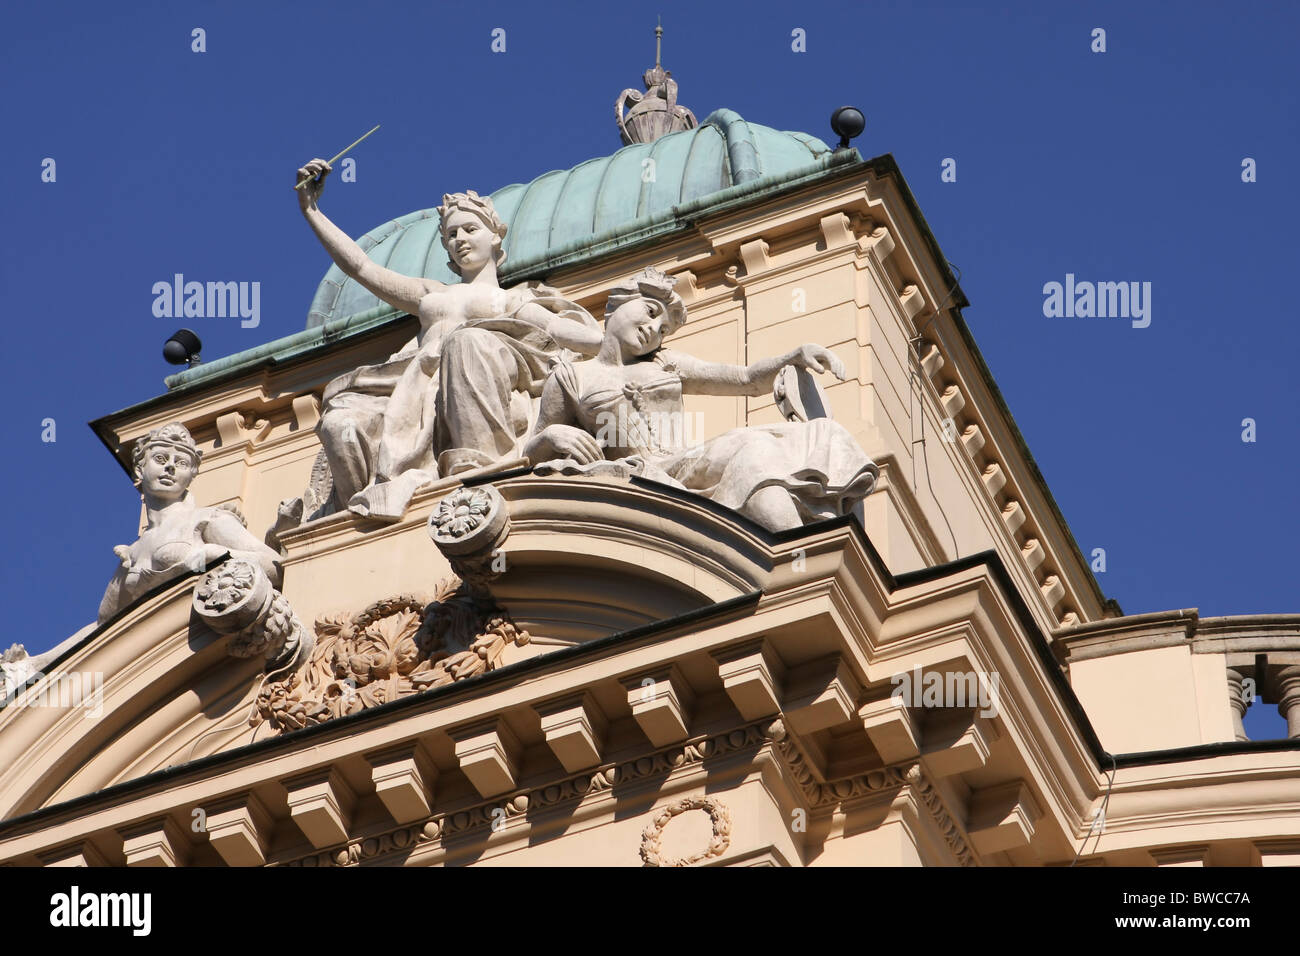 Statues on the Slowacki theatre in Cracow - Stock Image